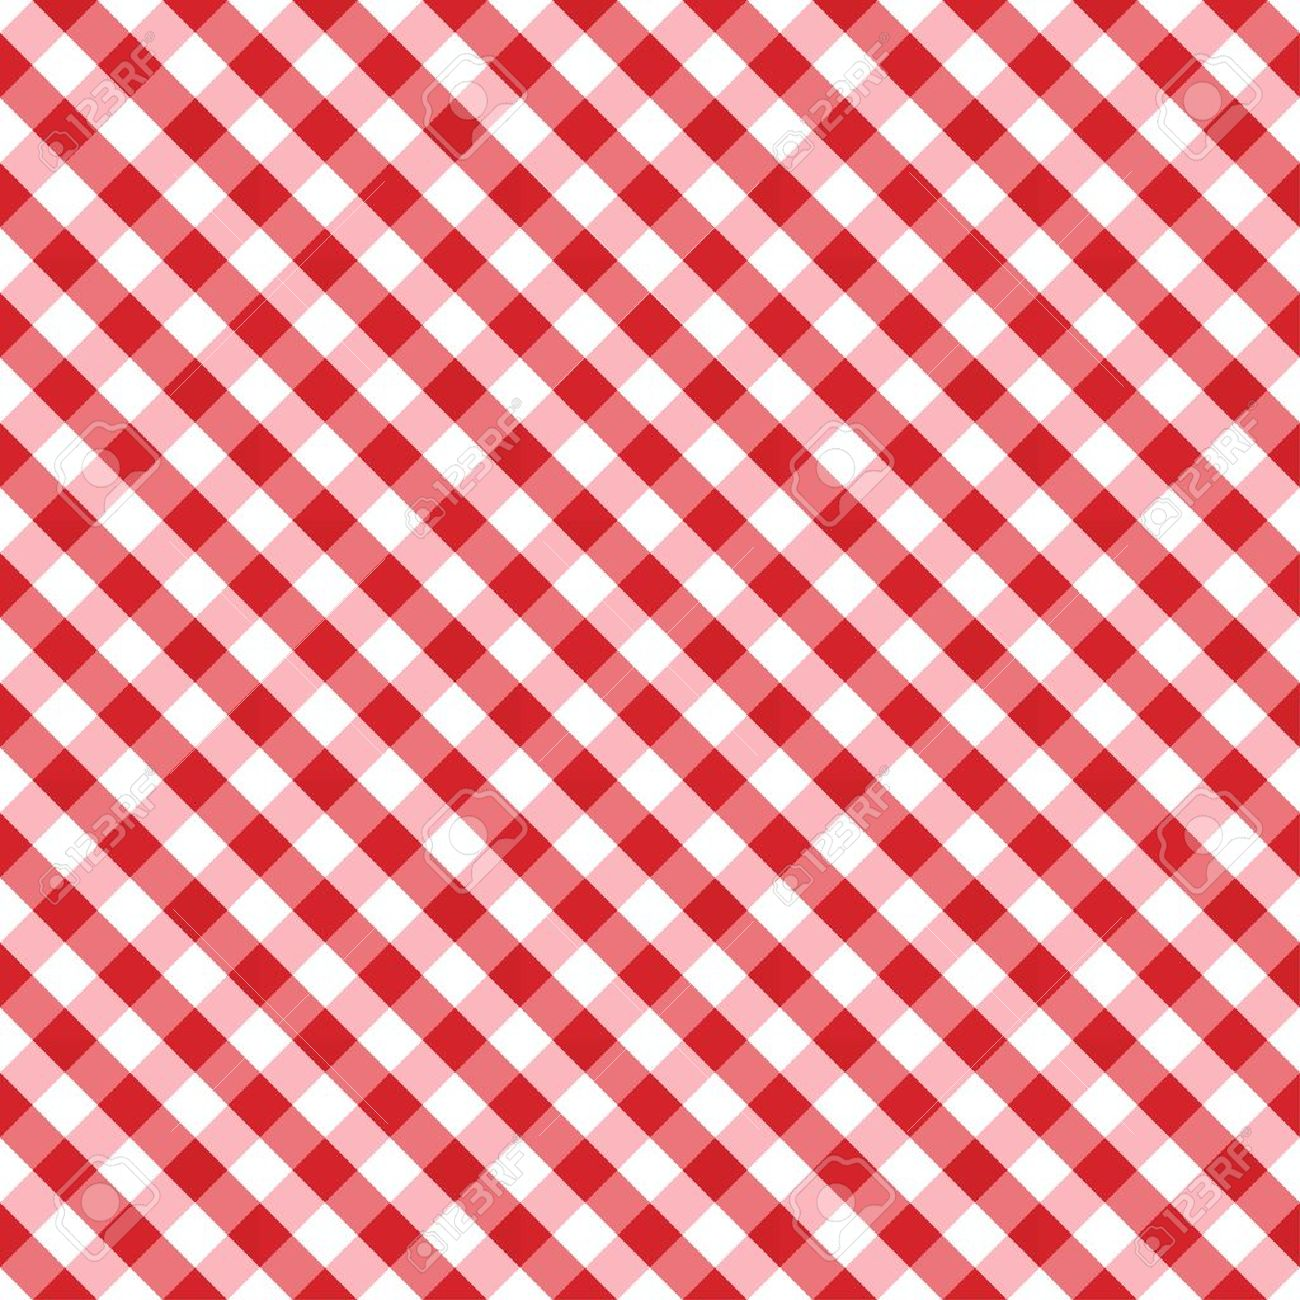 Free Pink Tablecloth Cliparts, Download Free Clip Art, Free.